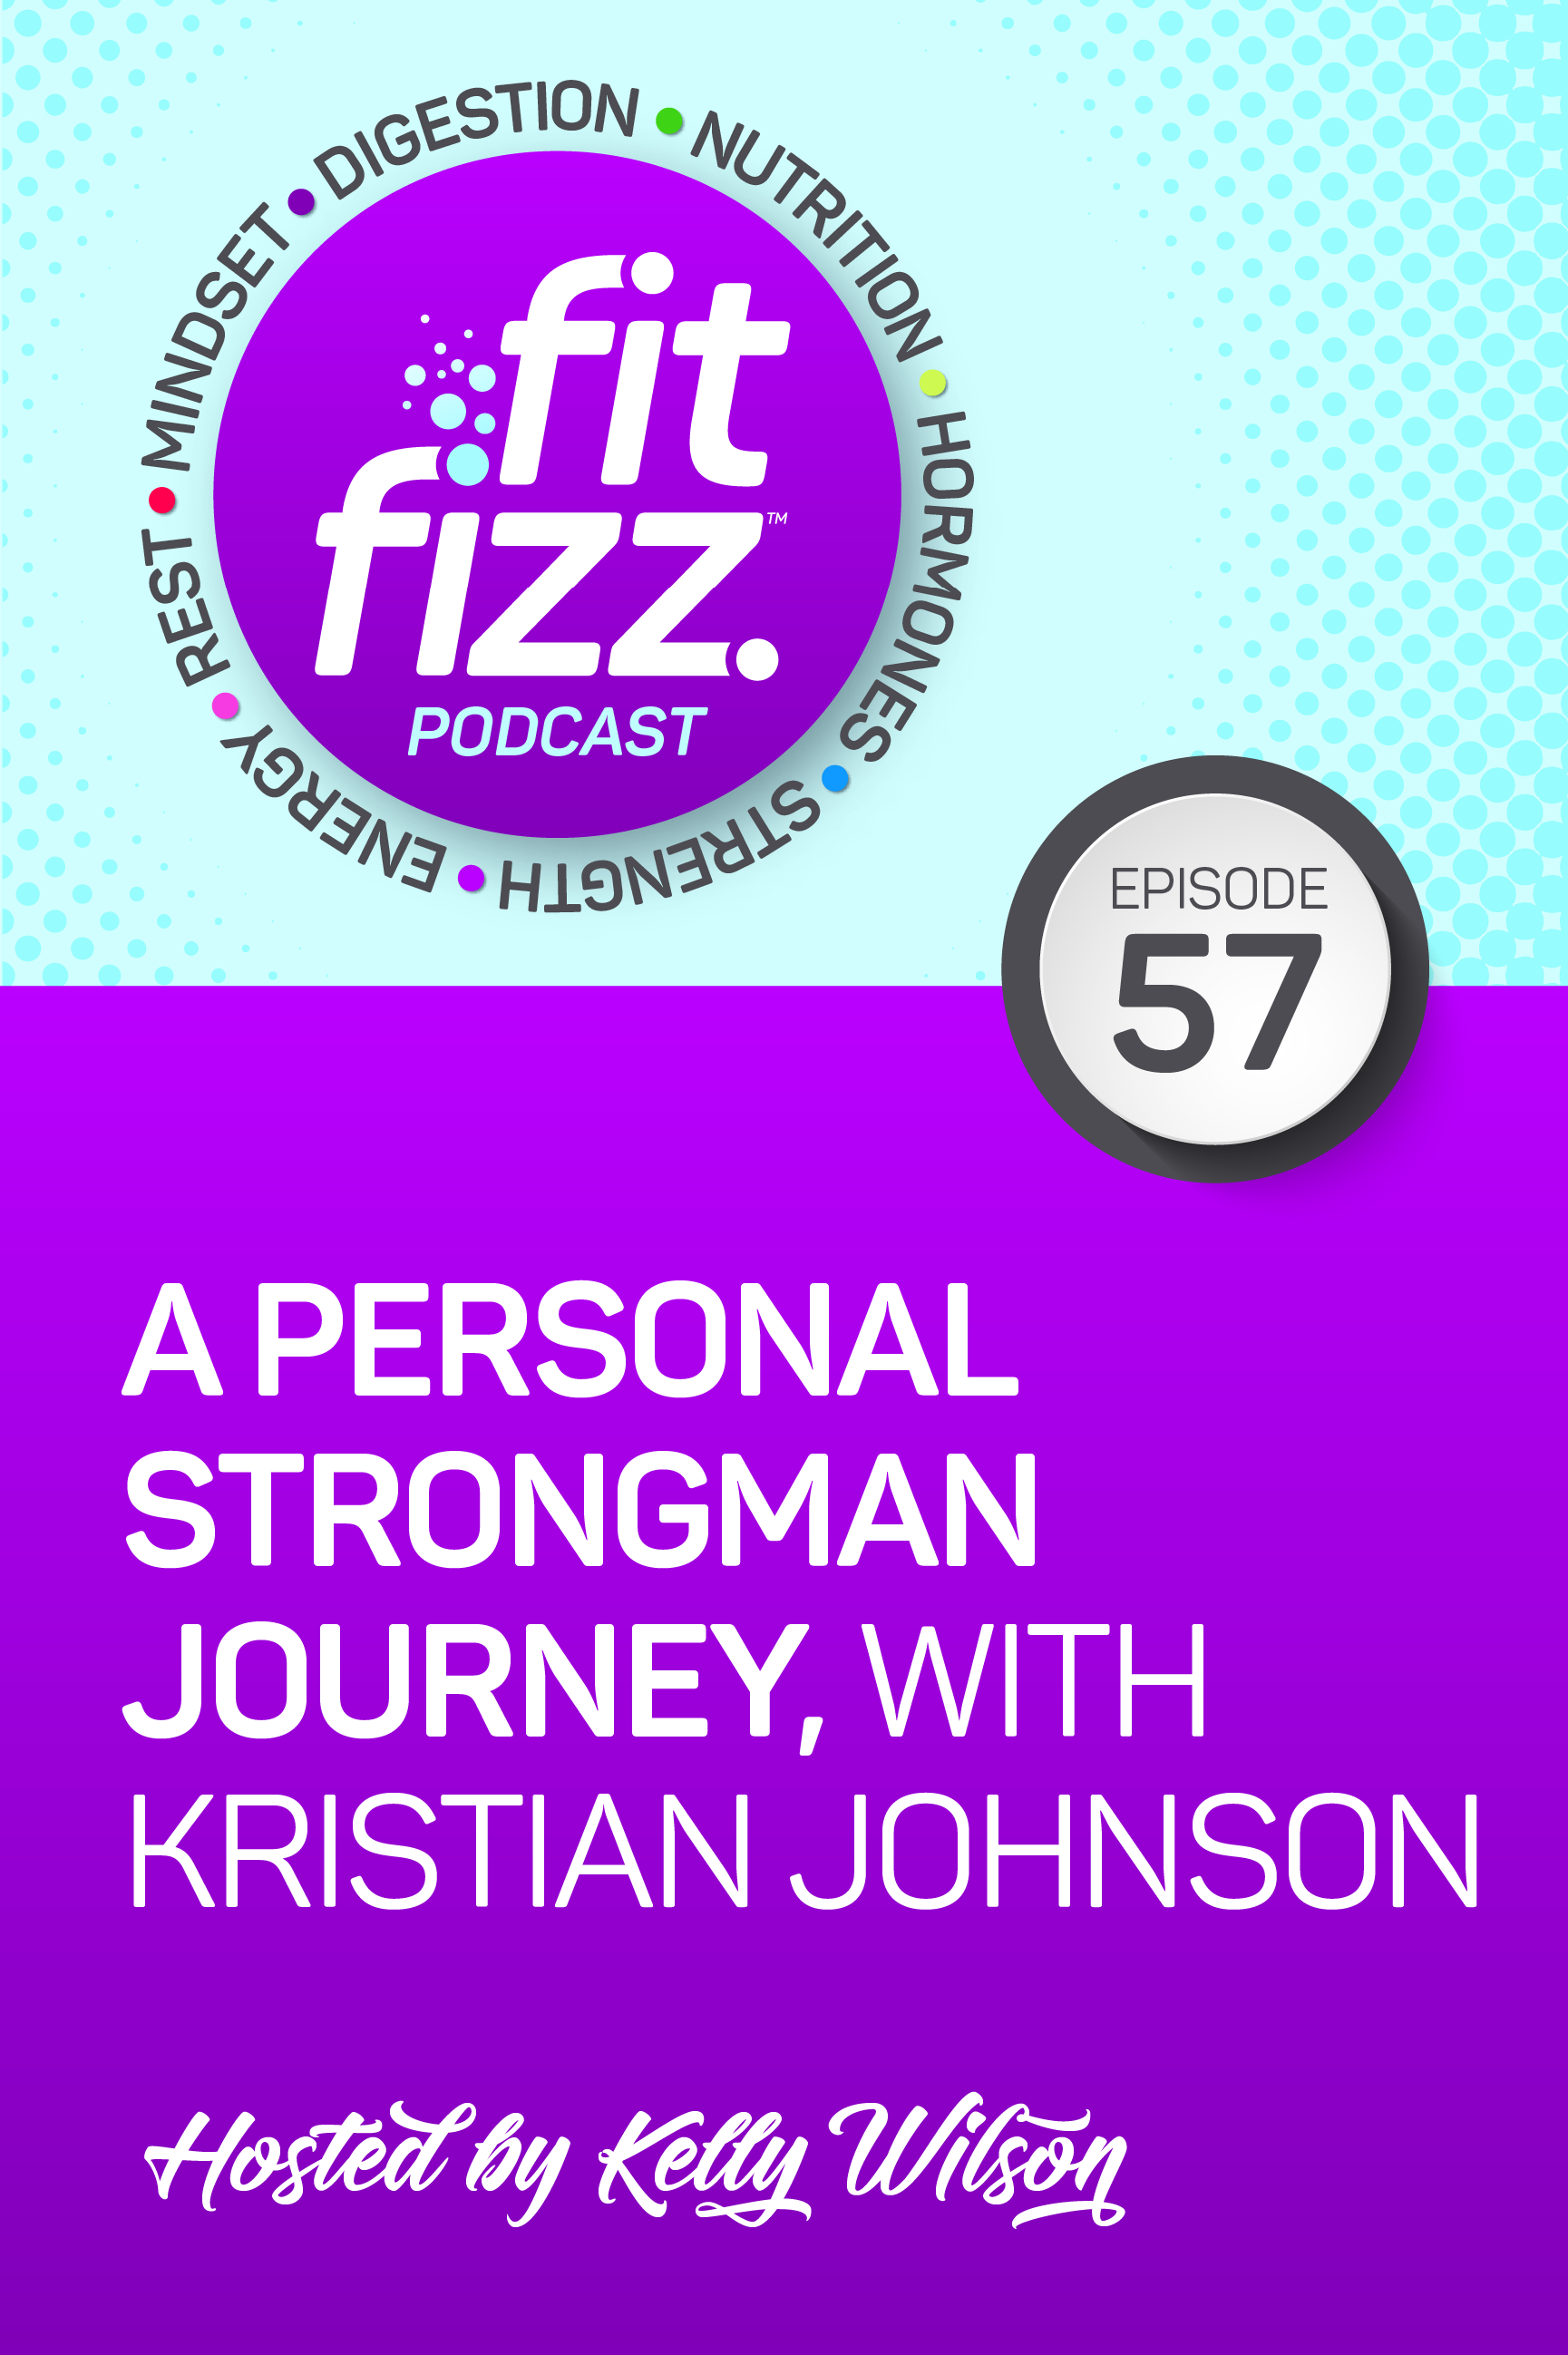 Ep. 57: A Personal Strongman Journey, with Kristian Johnson